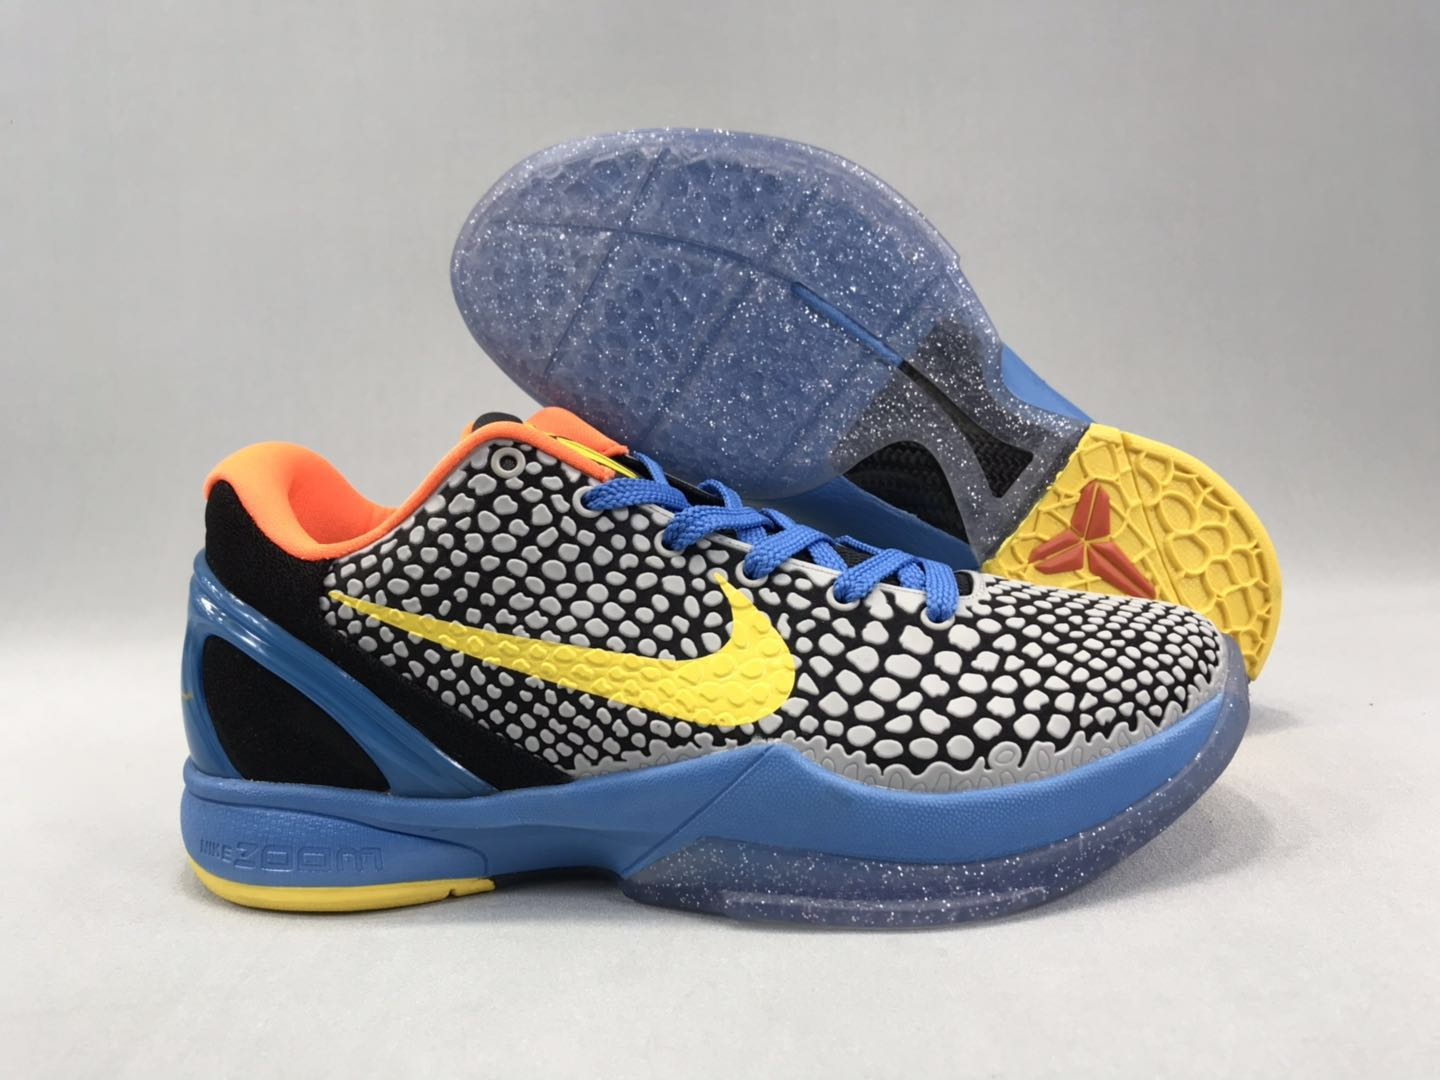 New-release Nike Kobe 8 Snake Skin Gfrey Black Yellow Blue Shoes